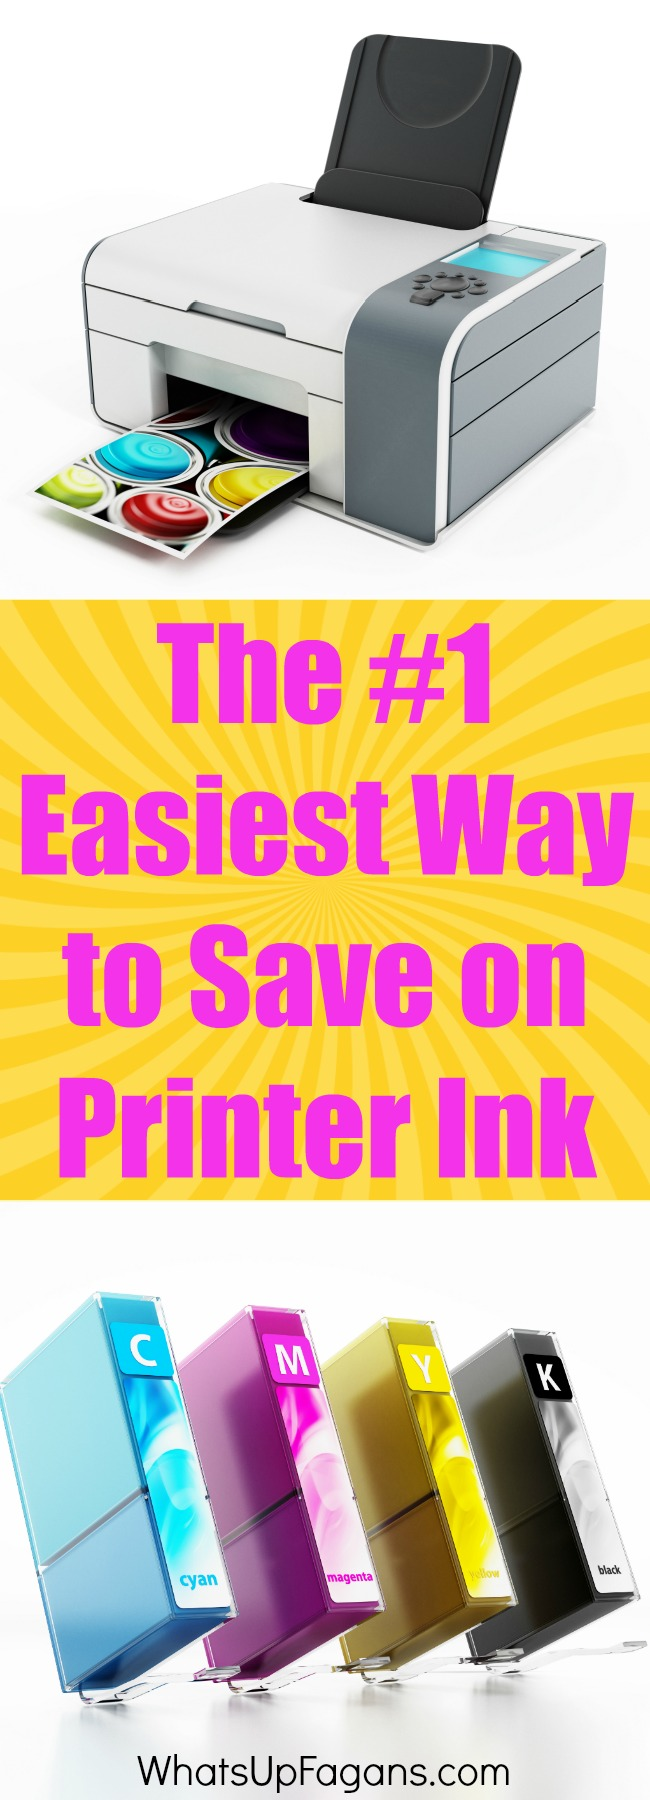 save money on printer ink | HP Instant Ink Program Overview and Review | saving money on printing costs | frugal living | cheap | thrifty | inexpensive | subscription service